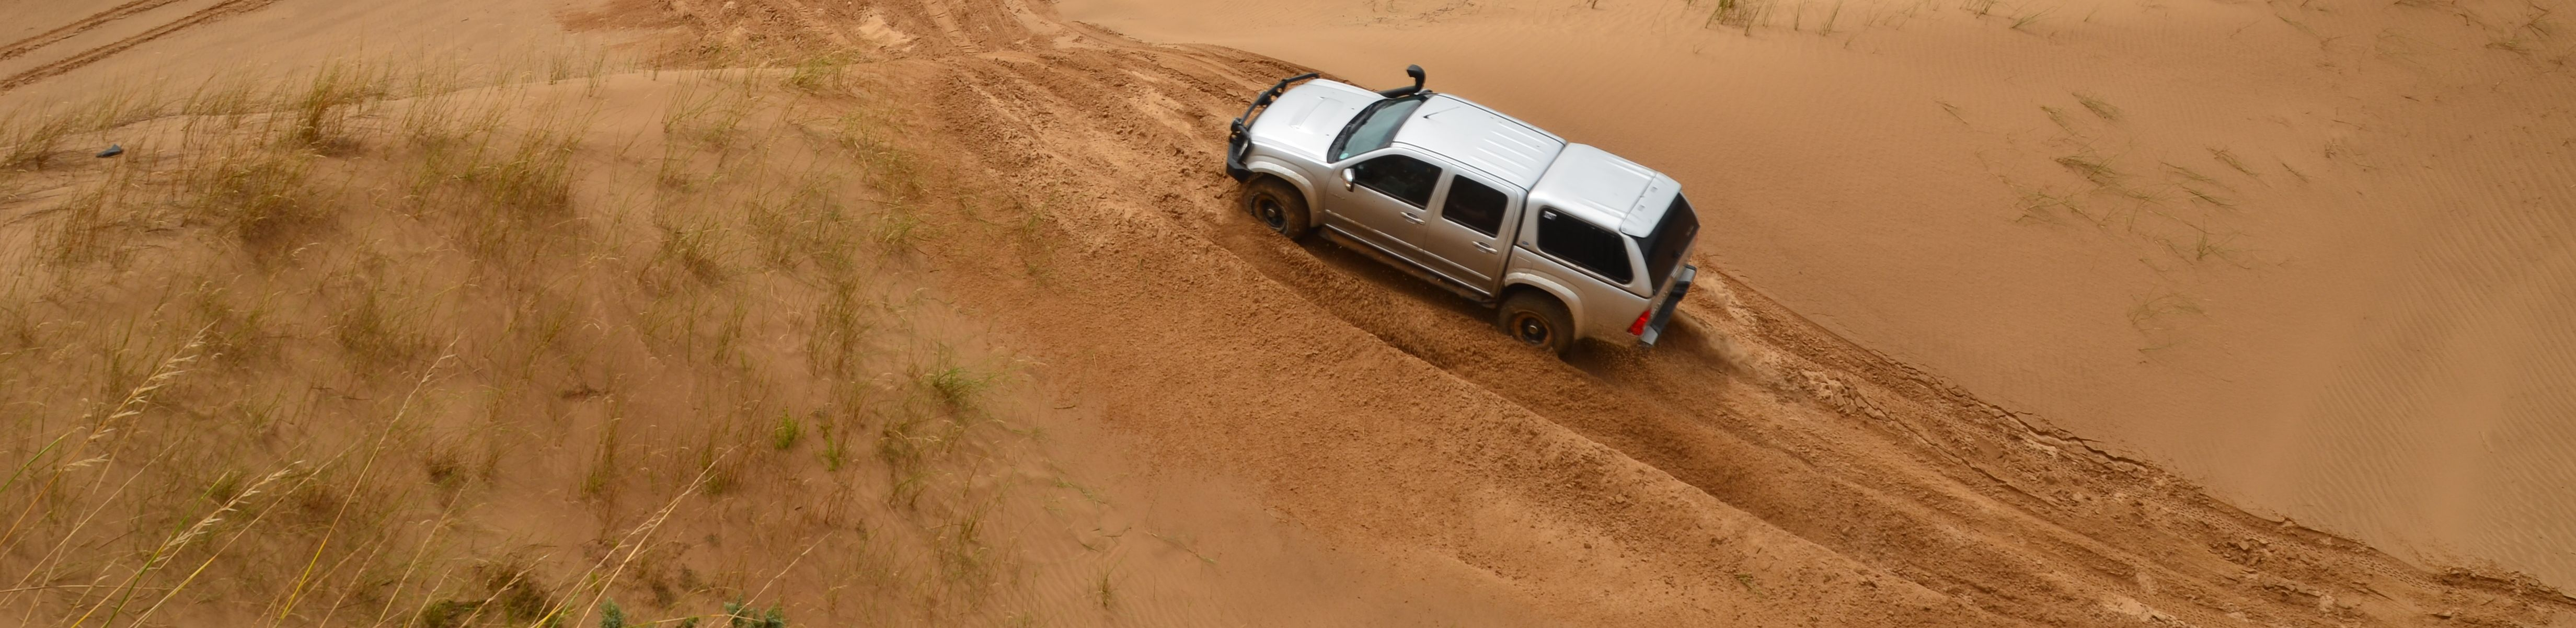 sand-driving - 4x4 Africa